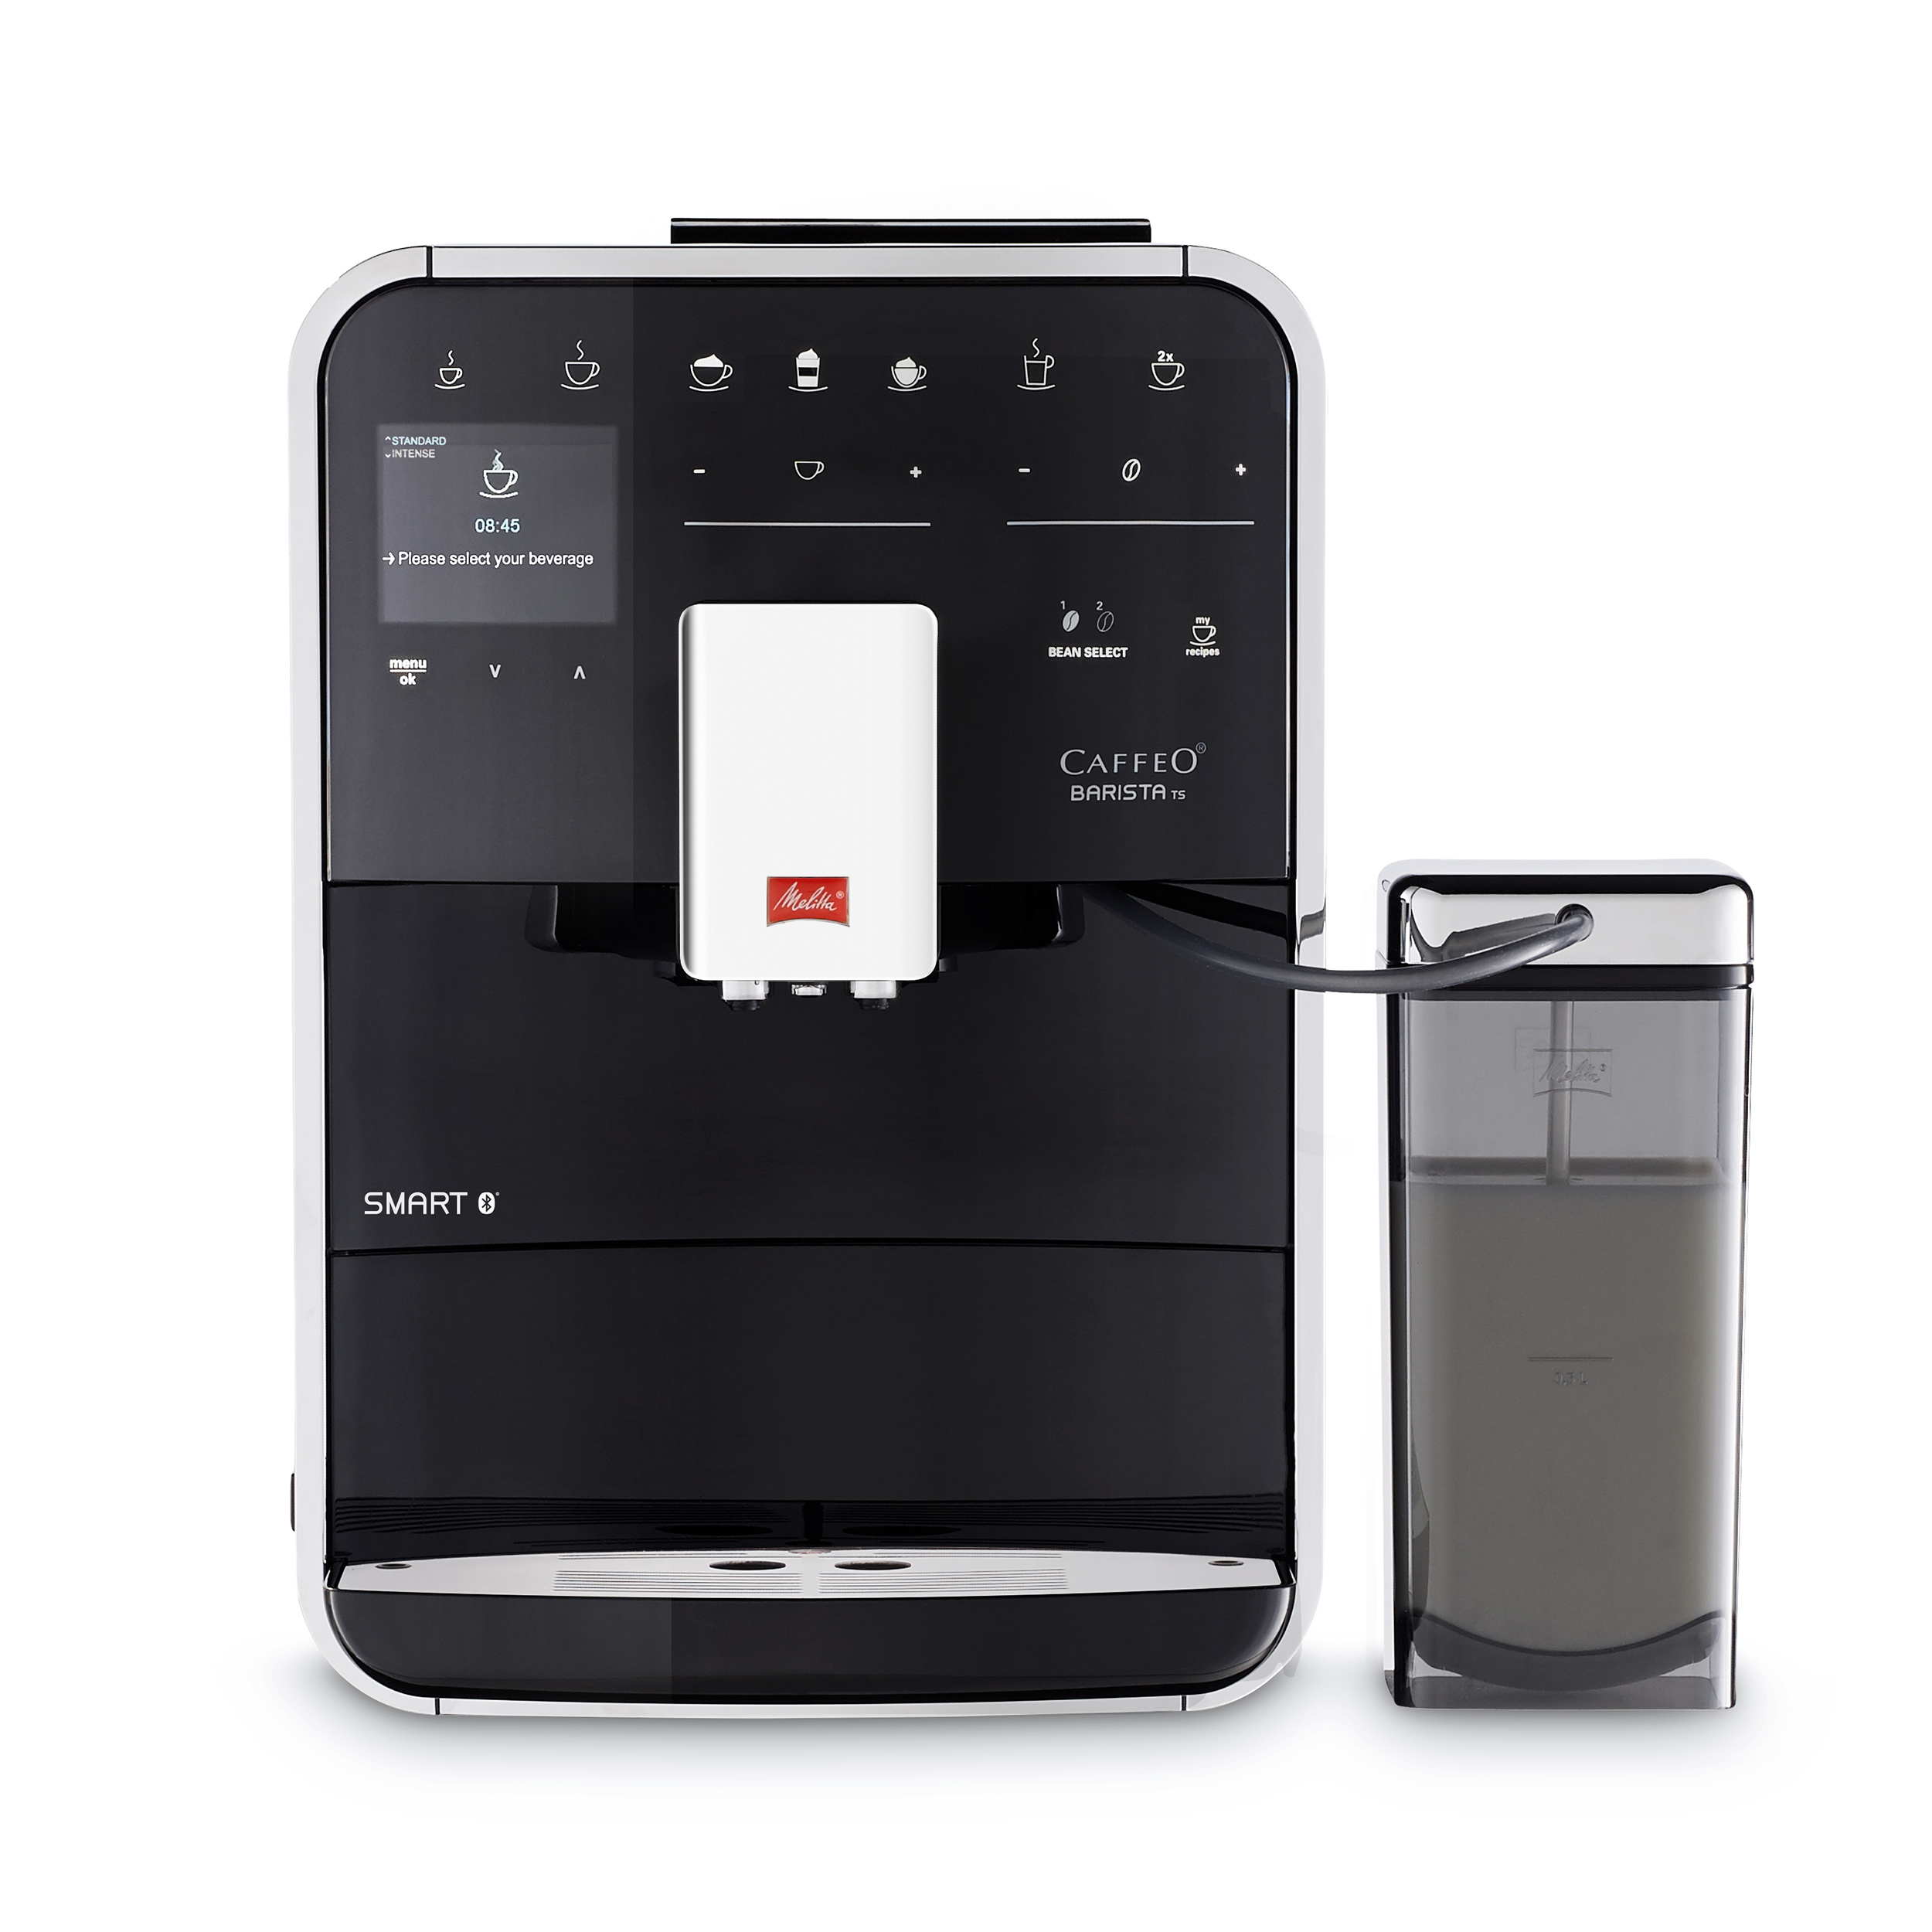 Coffee Machines & Accessories Melitta Barista TS Smart Bean to Cup Coffee Machine Black Ref 6764549